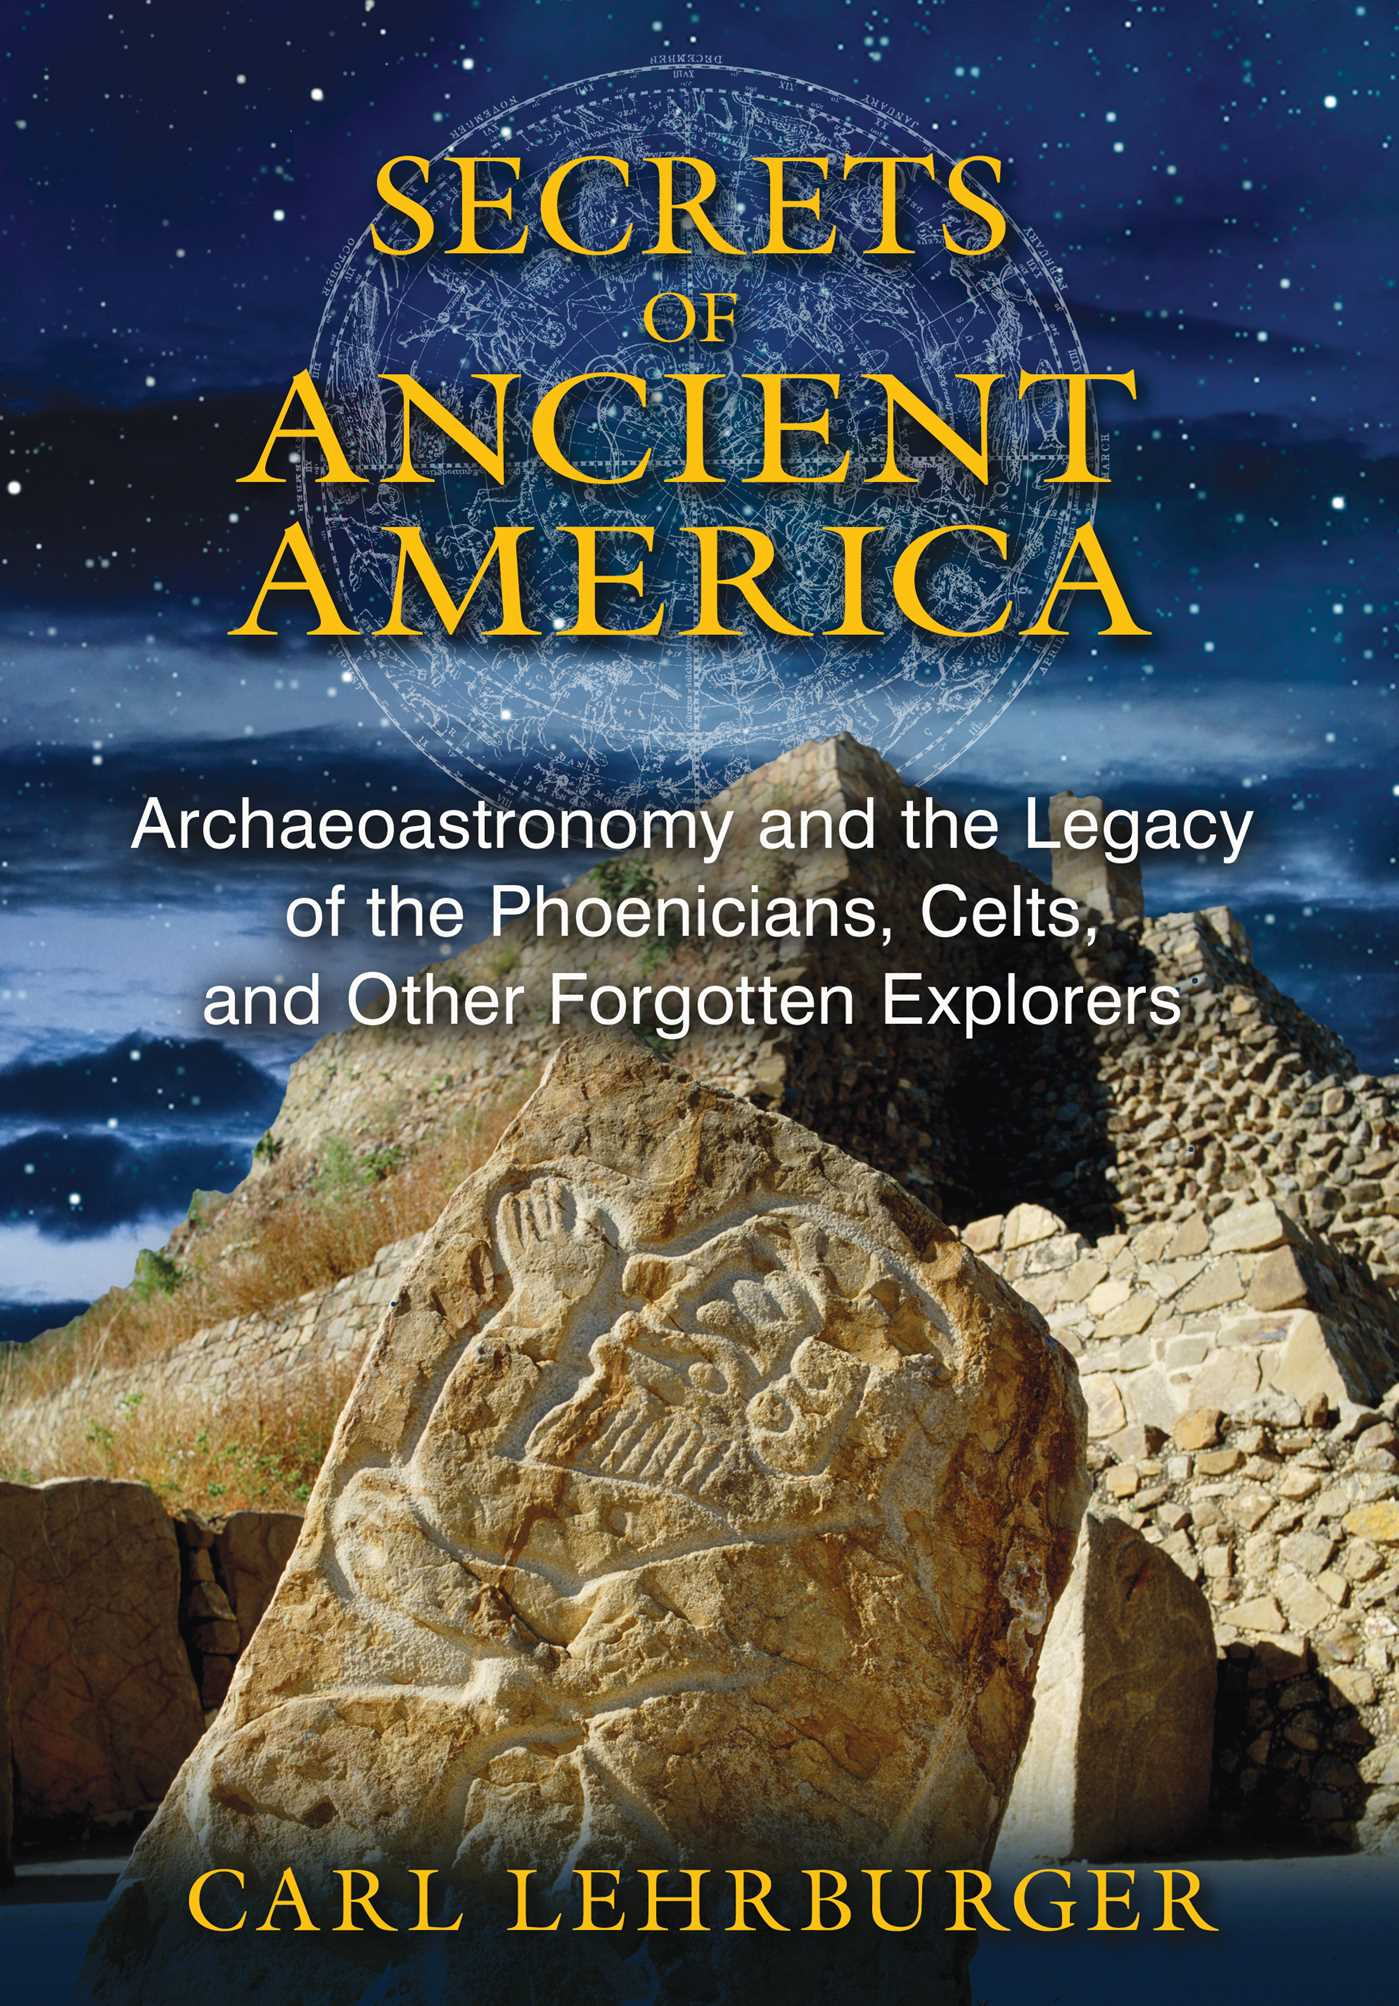 Secrets of ancient america 9781591431930 hr